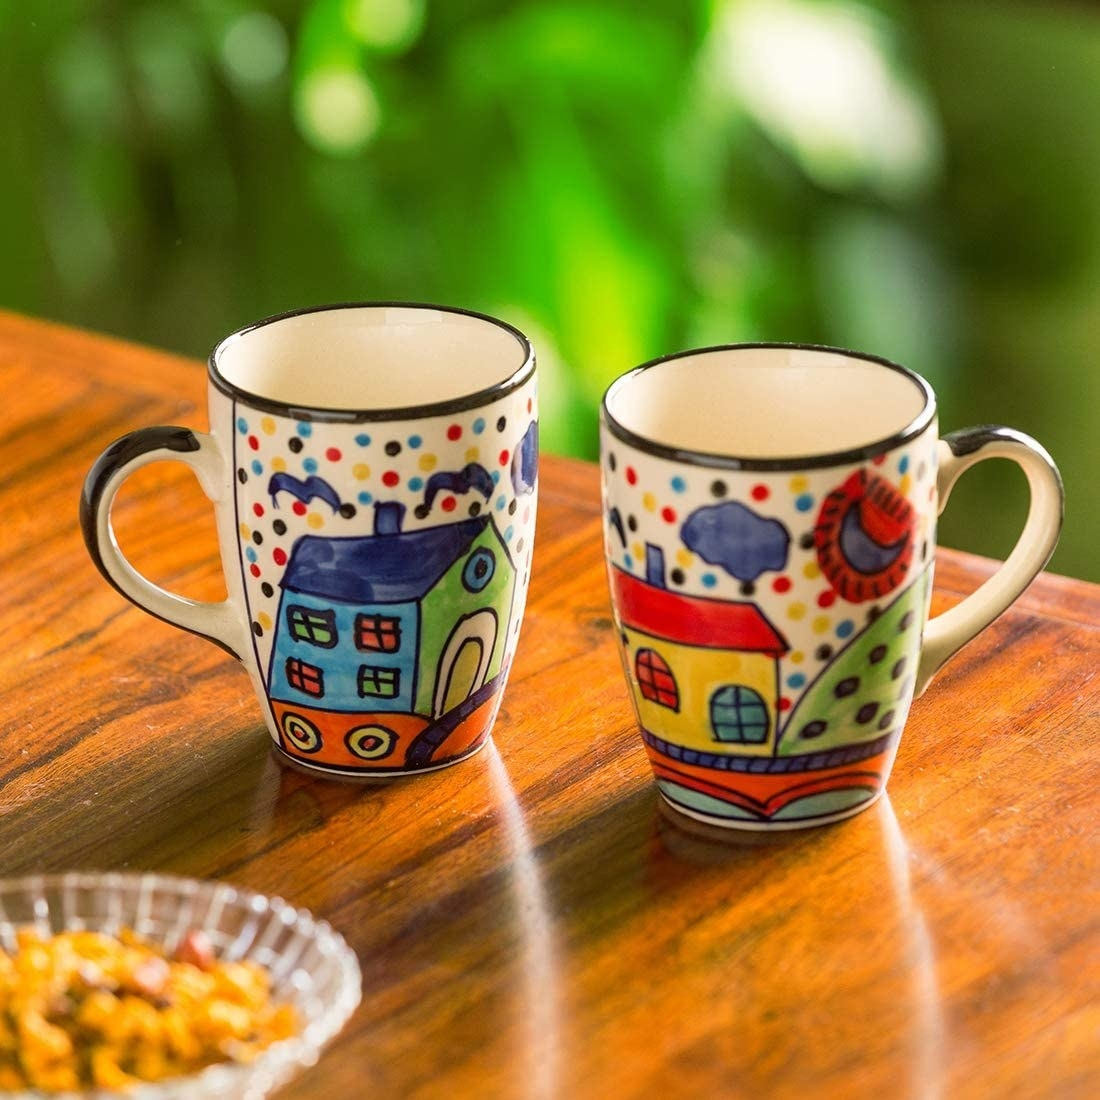 A pair of teacups with houses on them